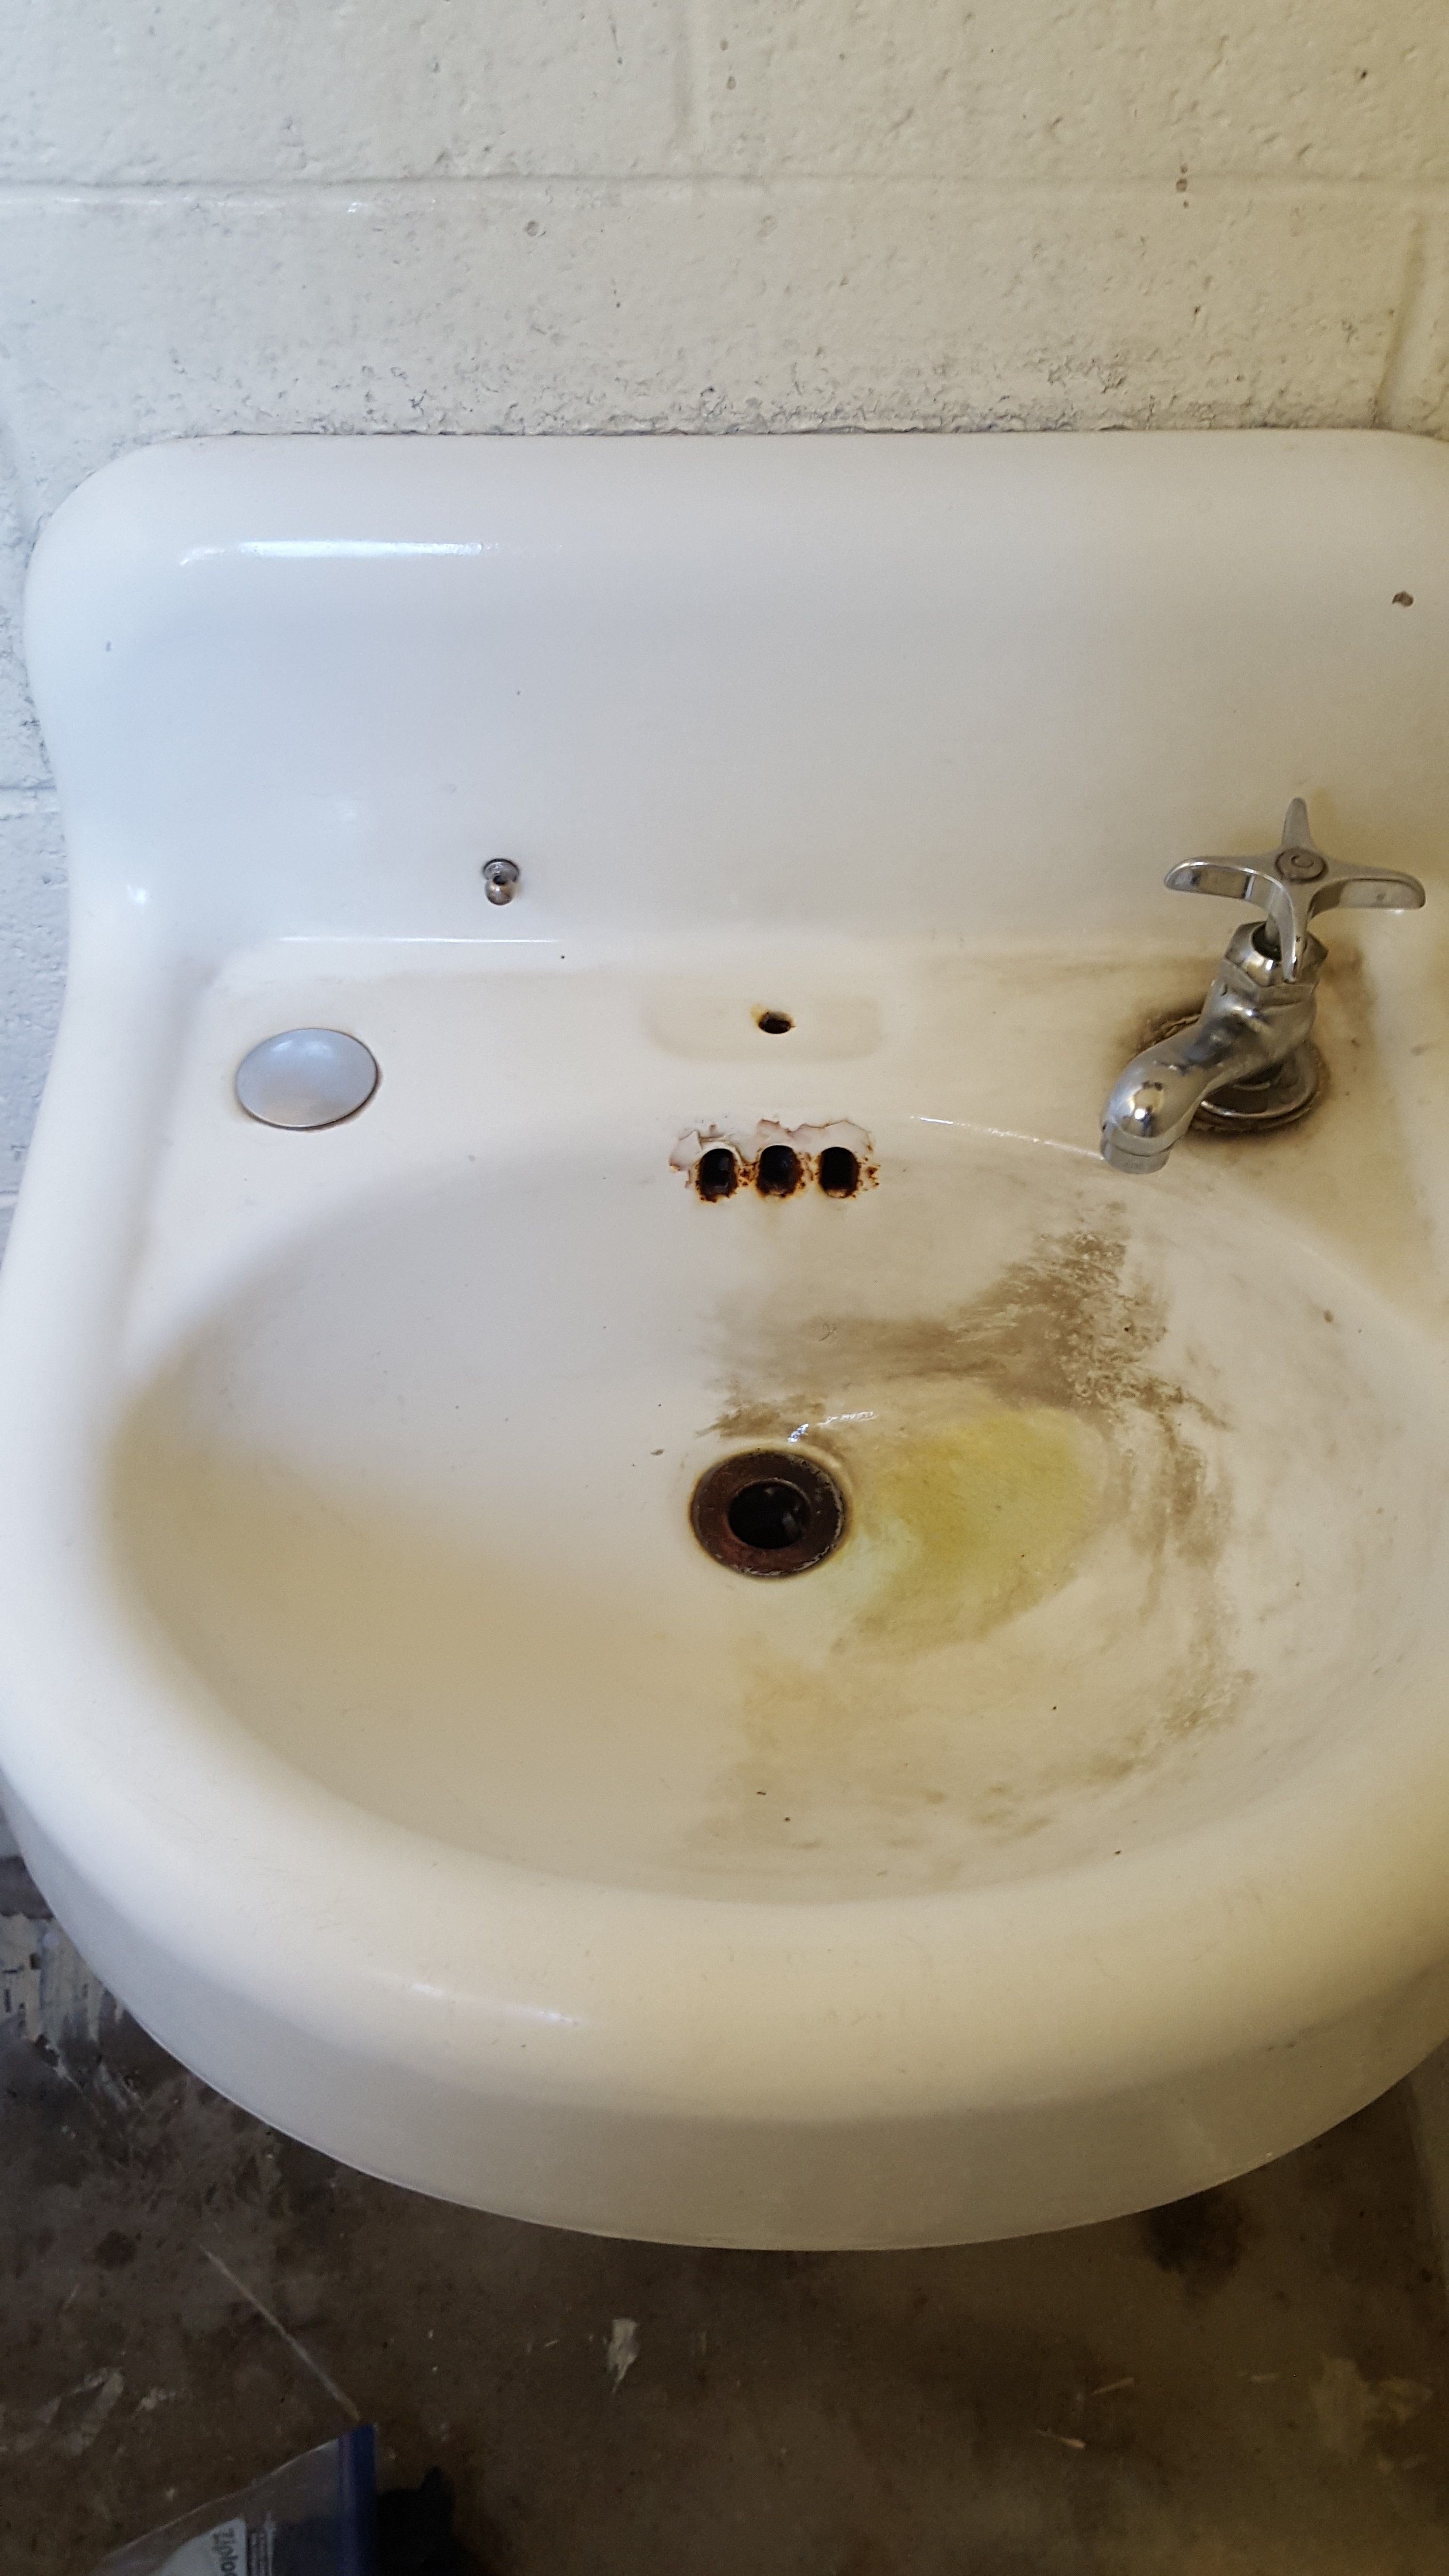 45 year old sink, Drill Pads and Bring It On Cleaner did the job ...